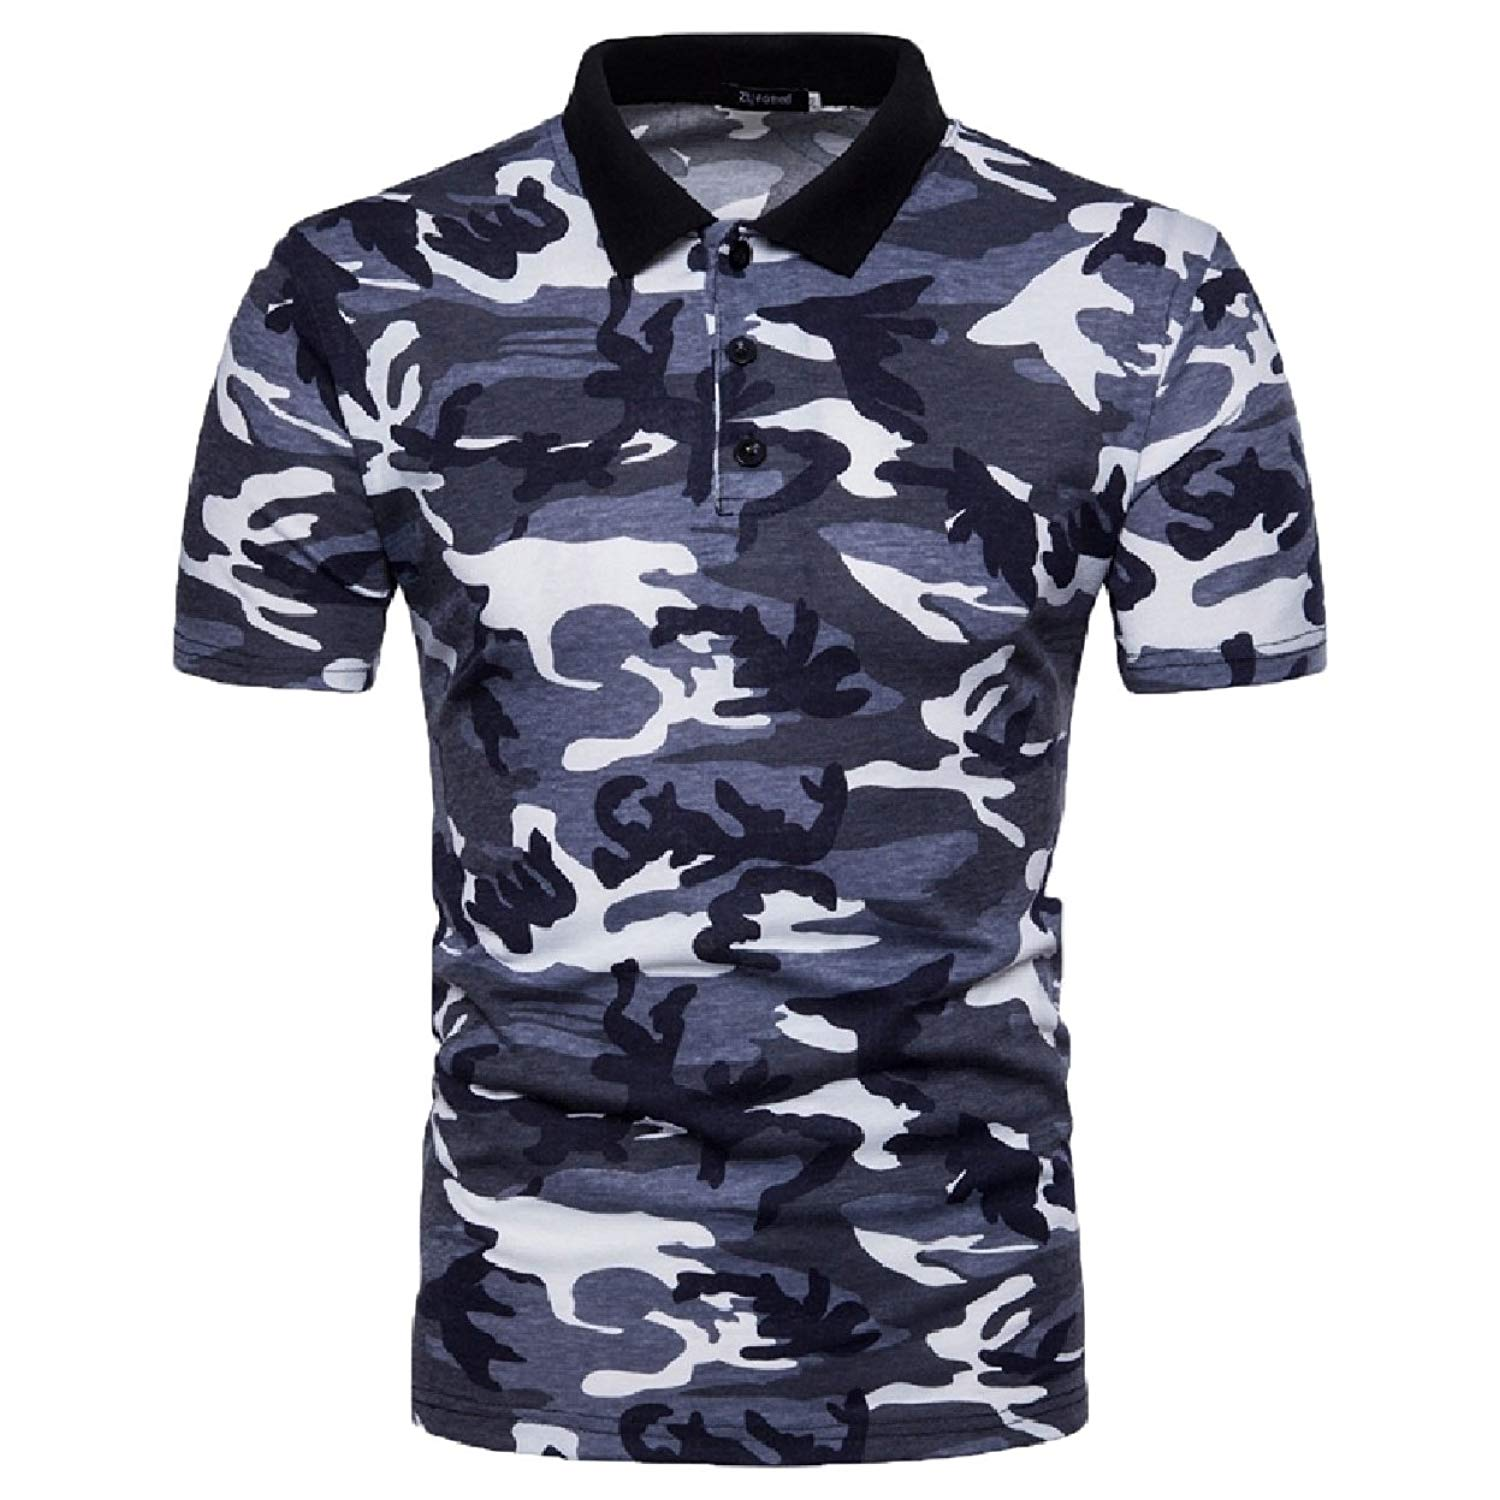 Zimaes-Men Short Sleeve Plus Size Turn Down Collar Solid Polo Top Tshirt